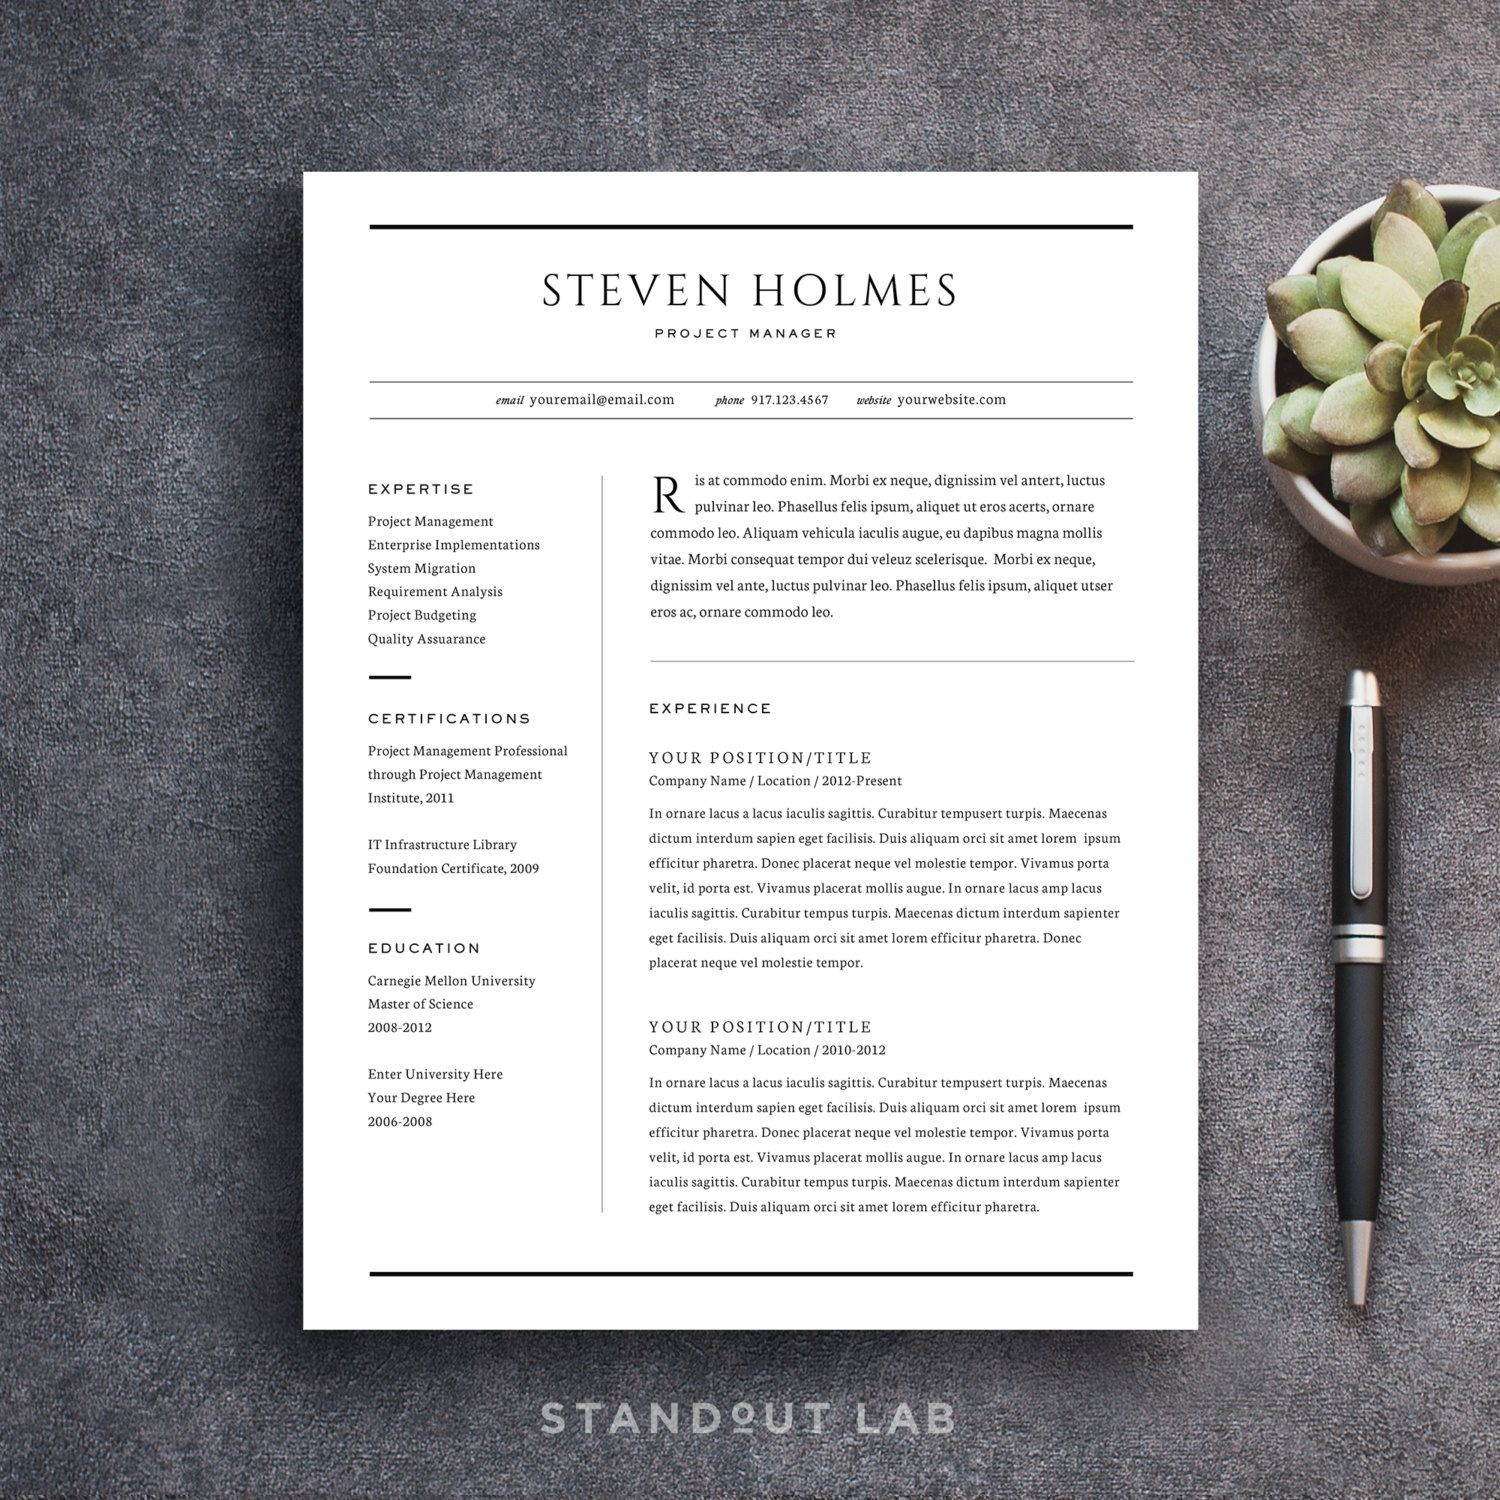 professionally designed and easy to customize two page resume and cover letter template - Resume Templates That Stand Out